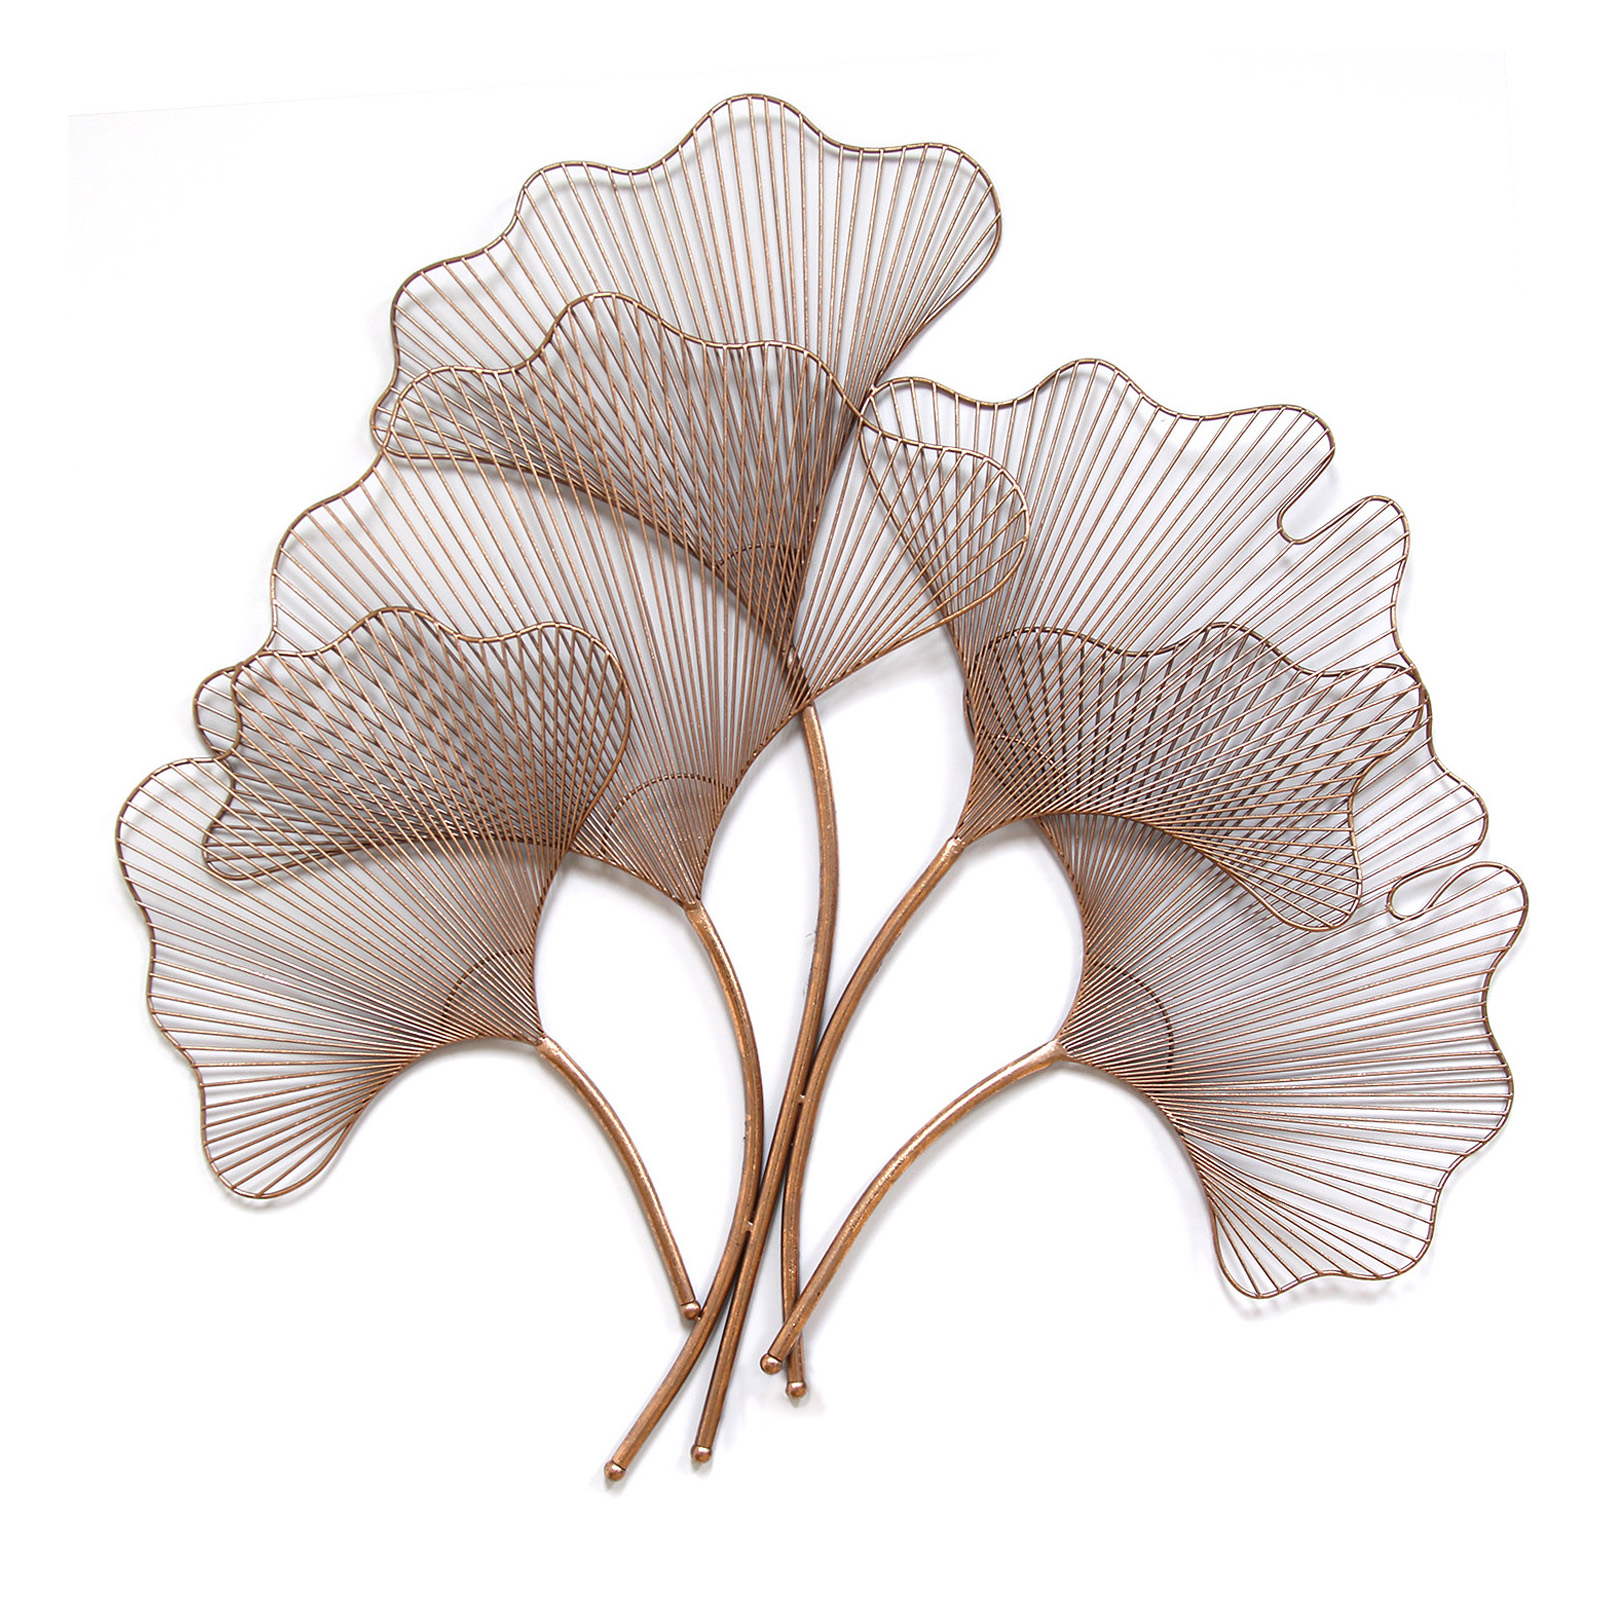 Metal Sculptures And Art Wall Decor: Stratton Home Rose Gold Ginkgo Leaf Wall Sculpture